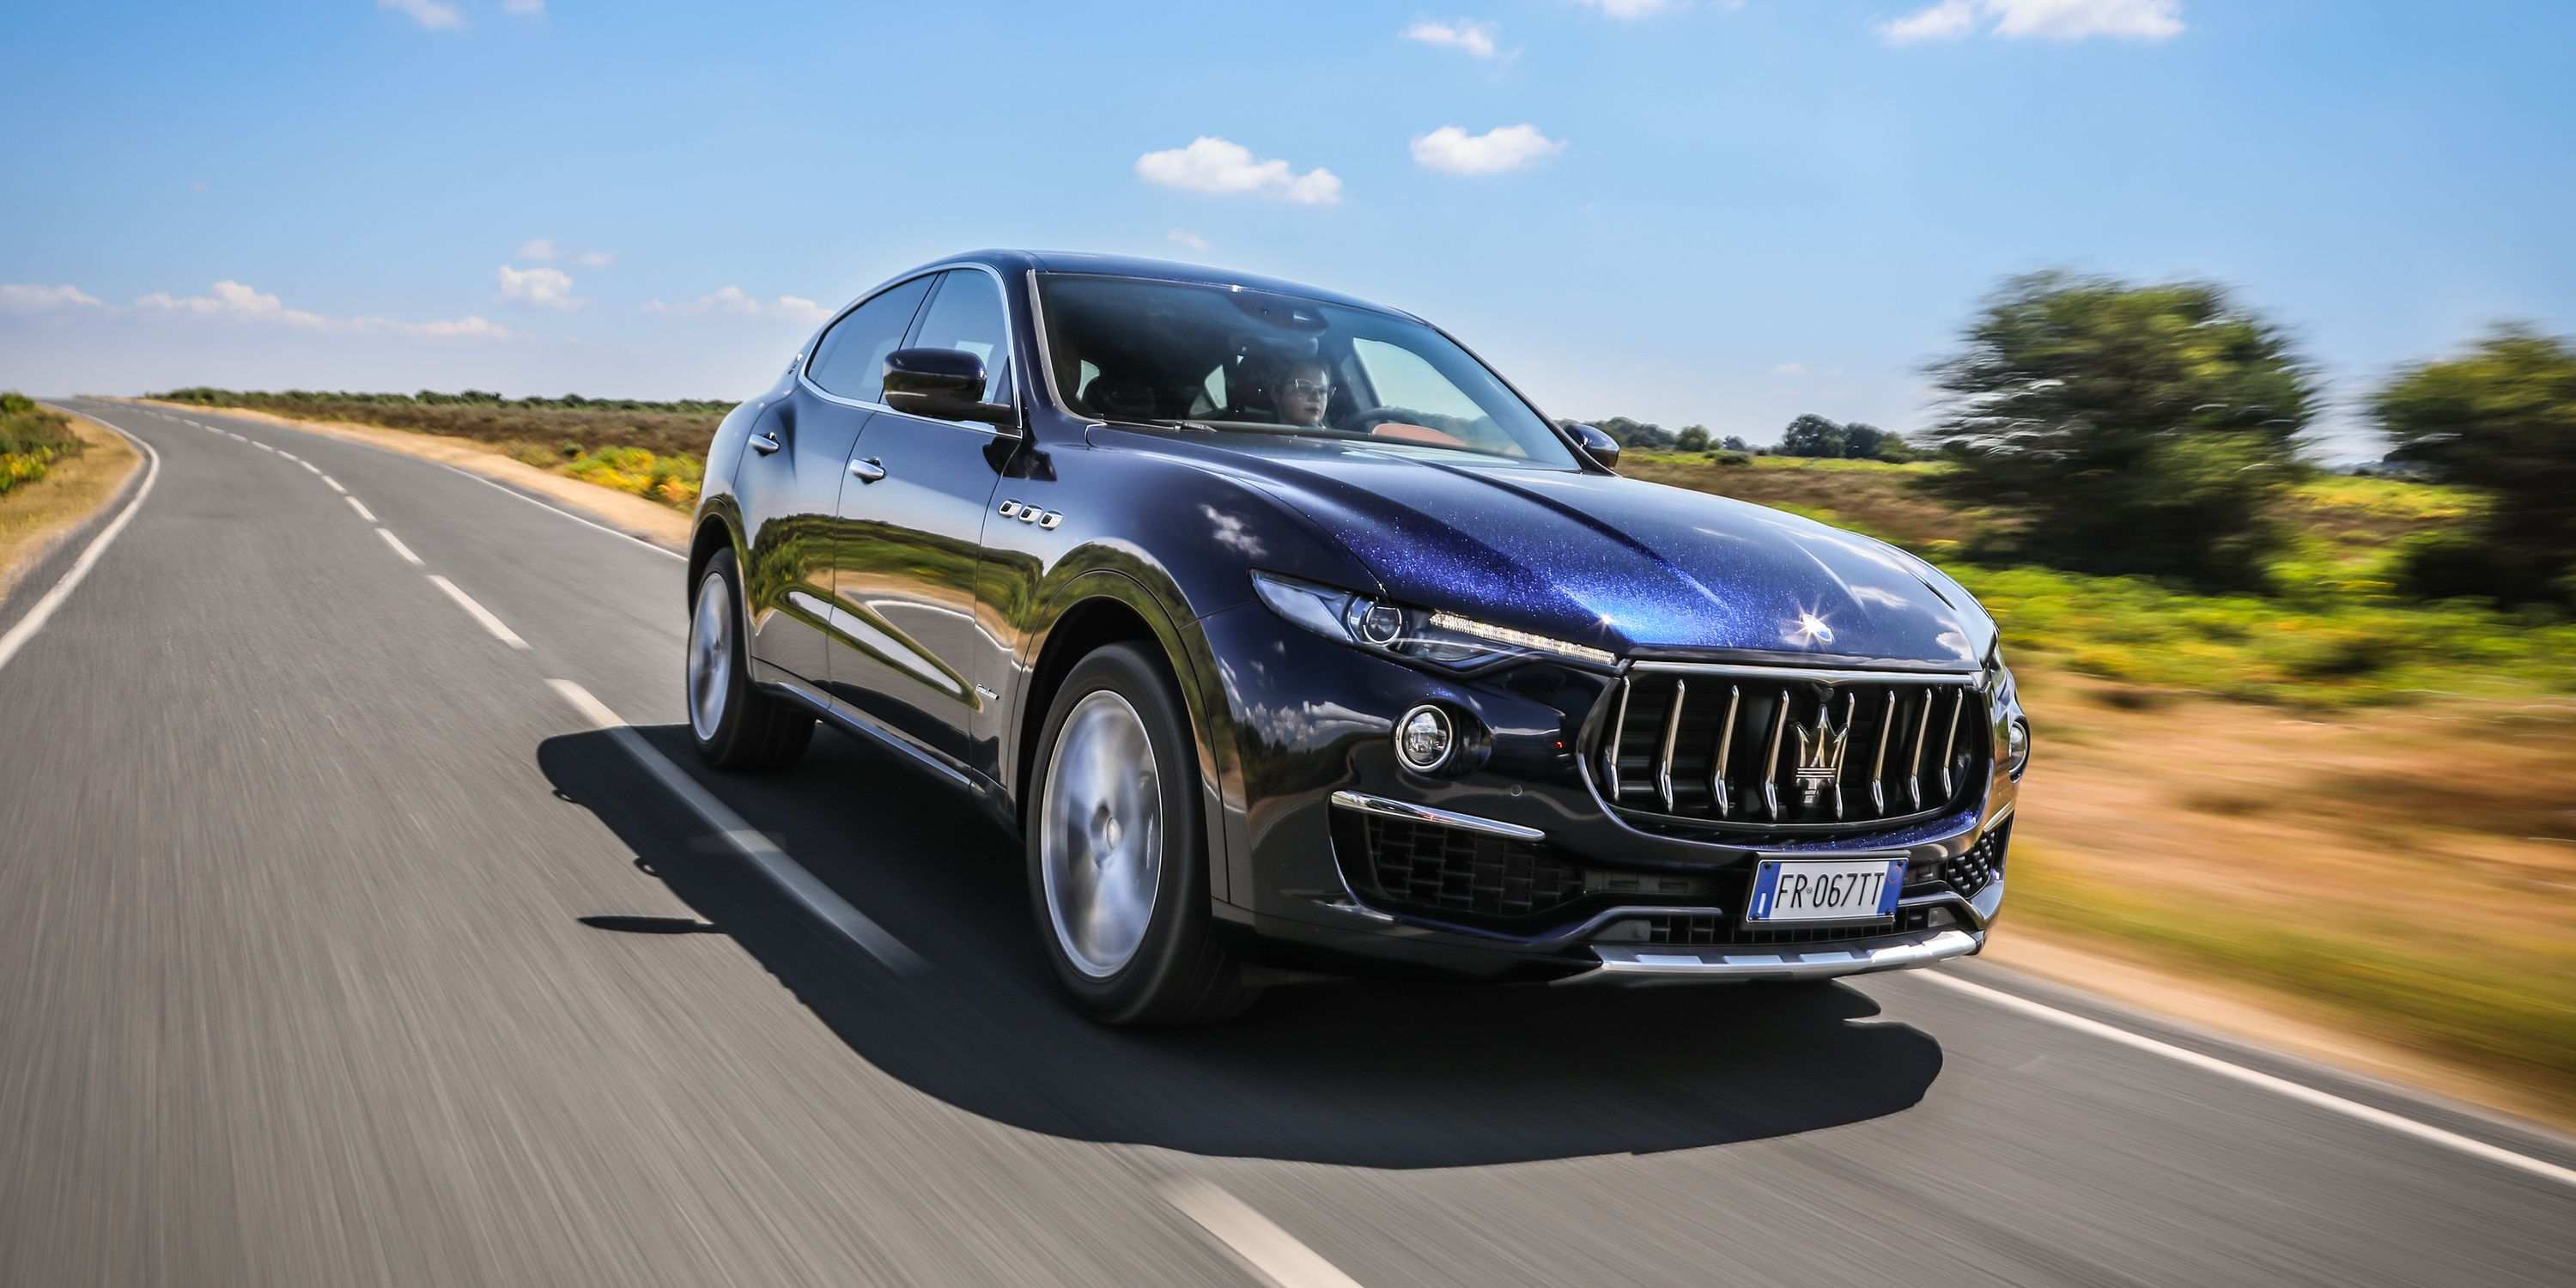 60 Best Review 2019 Maserati Suv Images by 2019 Maserati Suv